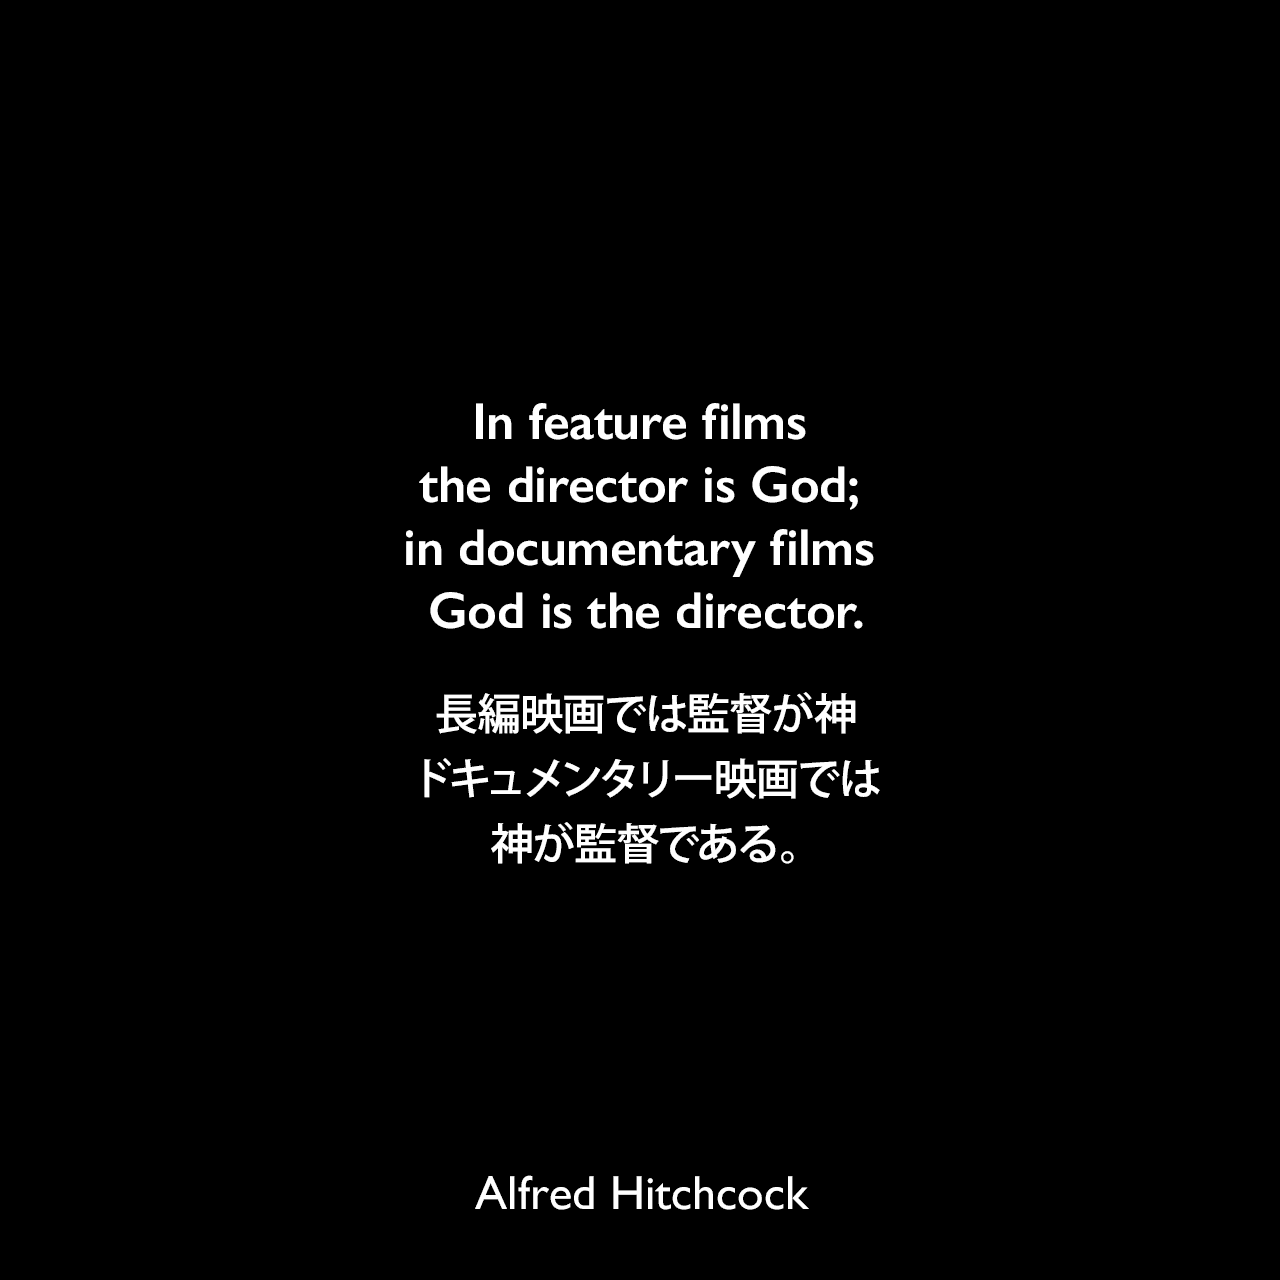 In feature films the director is God; in documentary films God is the director.長編映画では監督が神、ドキュメンタリー映画では神が監督である。Alfred Hitchcock